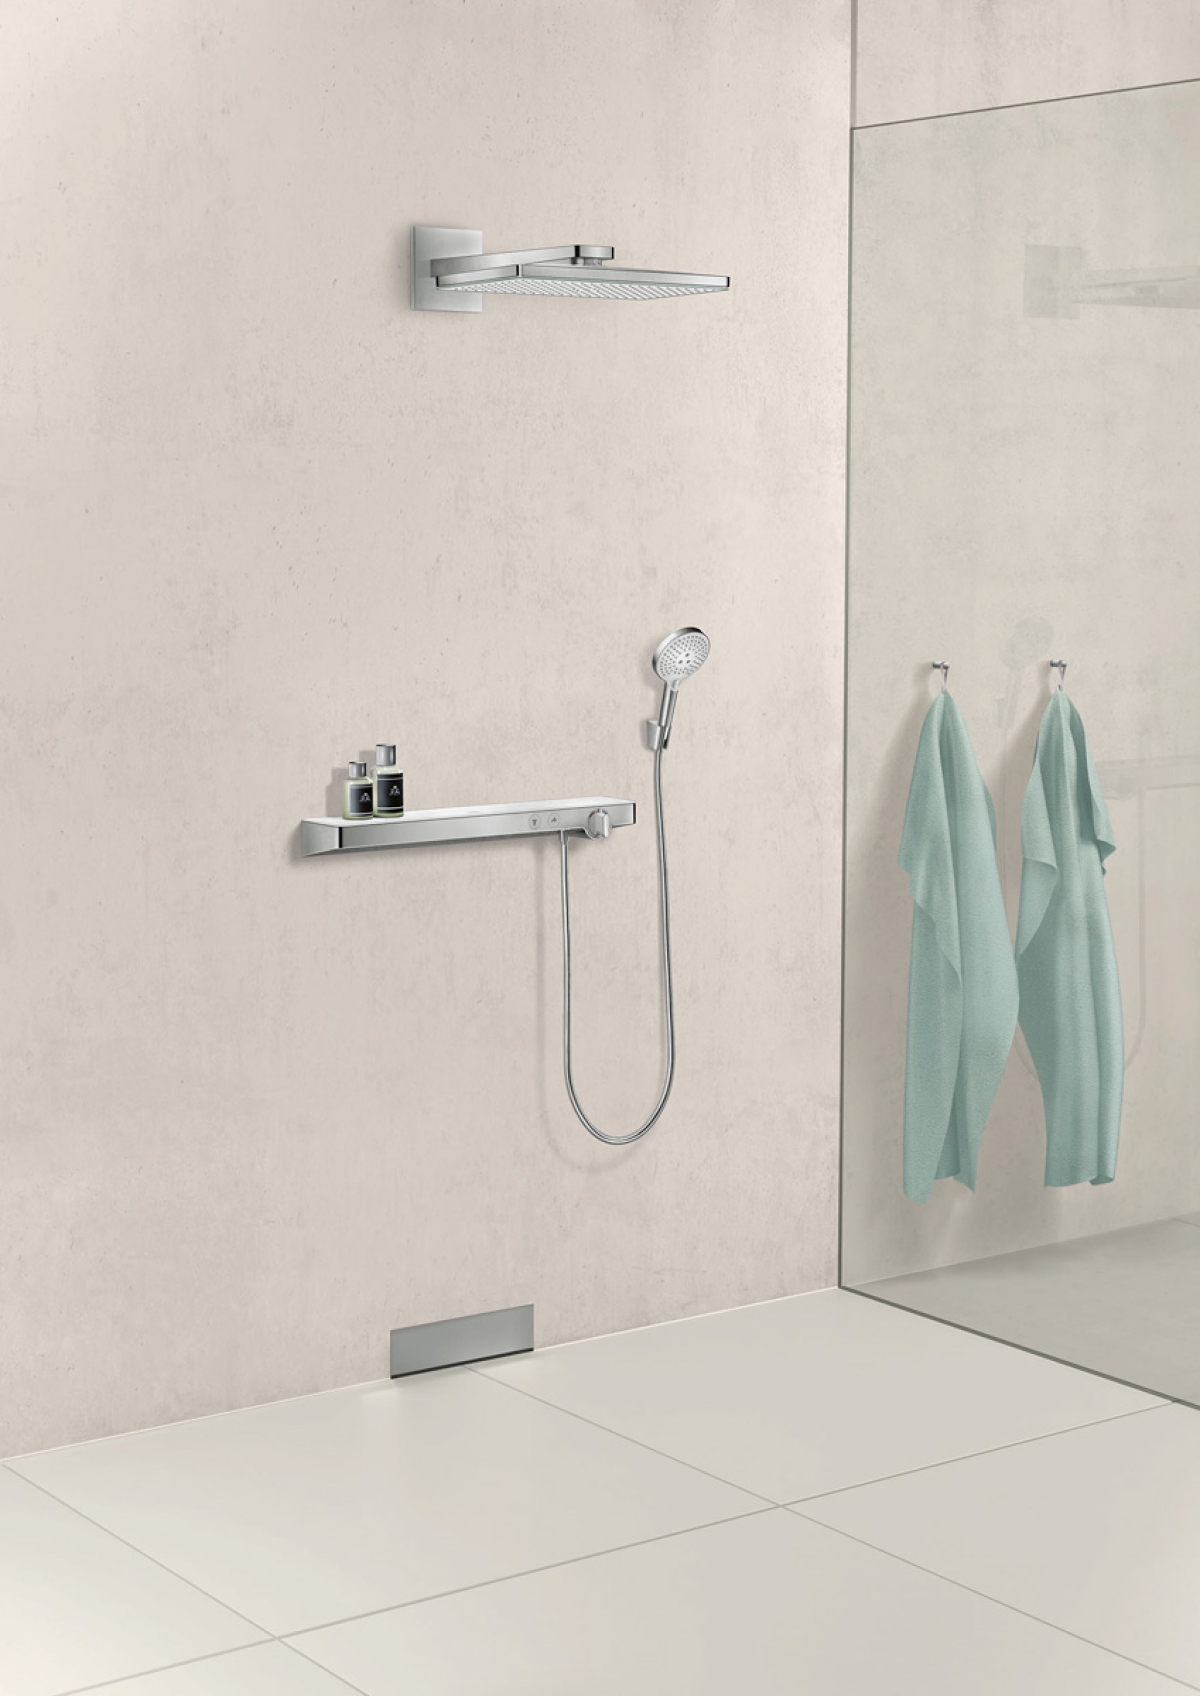 mitigeur thermostatique de douche showertablet hansgrohe induscabel salle de bains. Black Bedroom Furniture Sets. Home Design Ideas